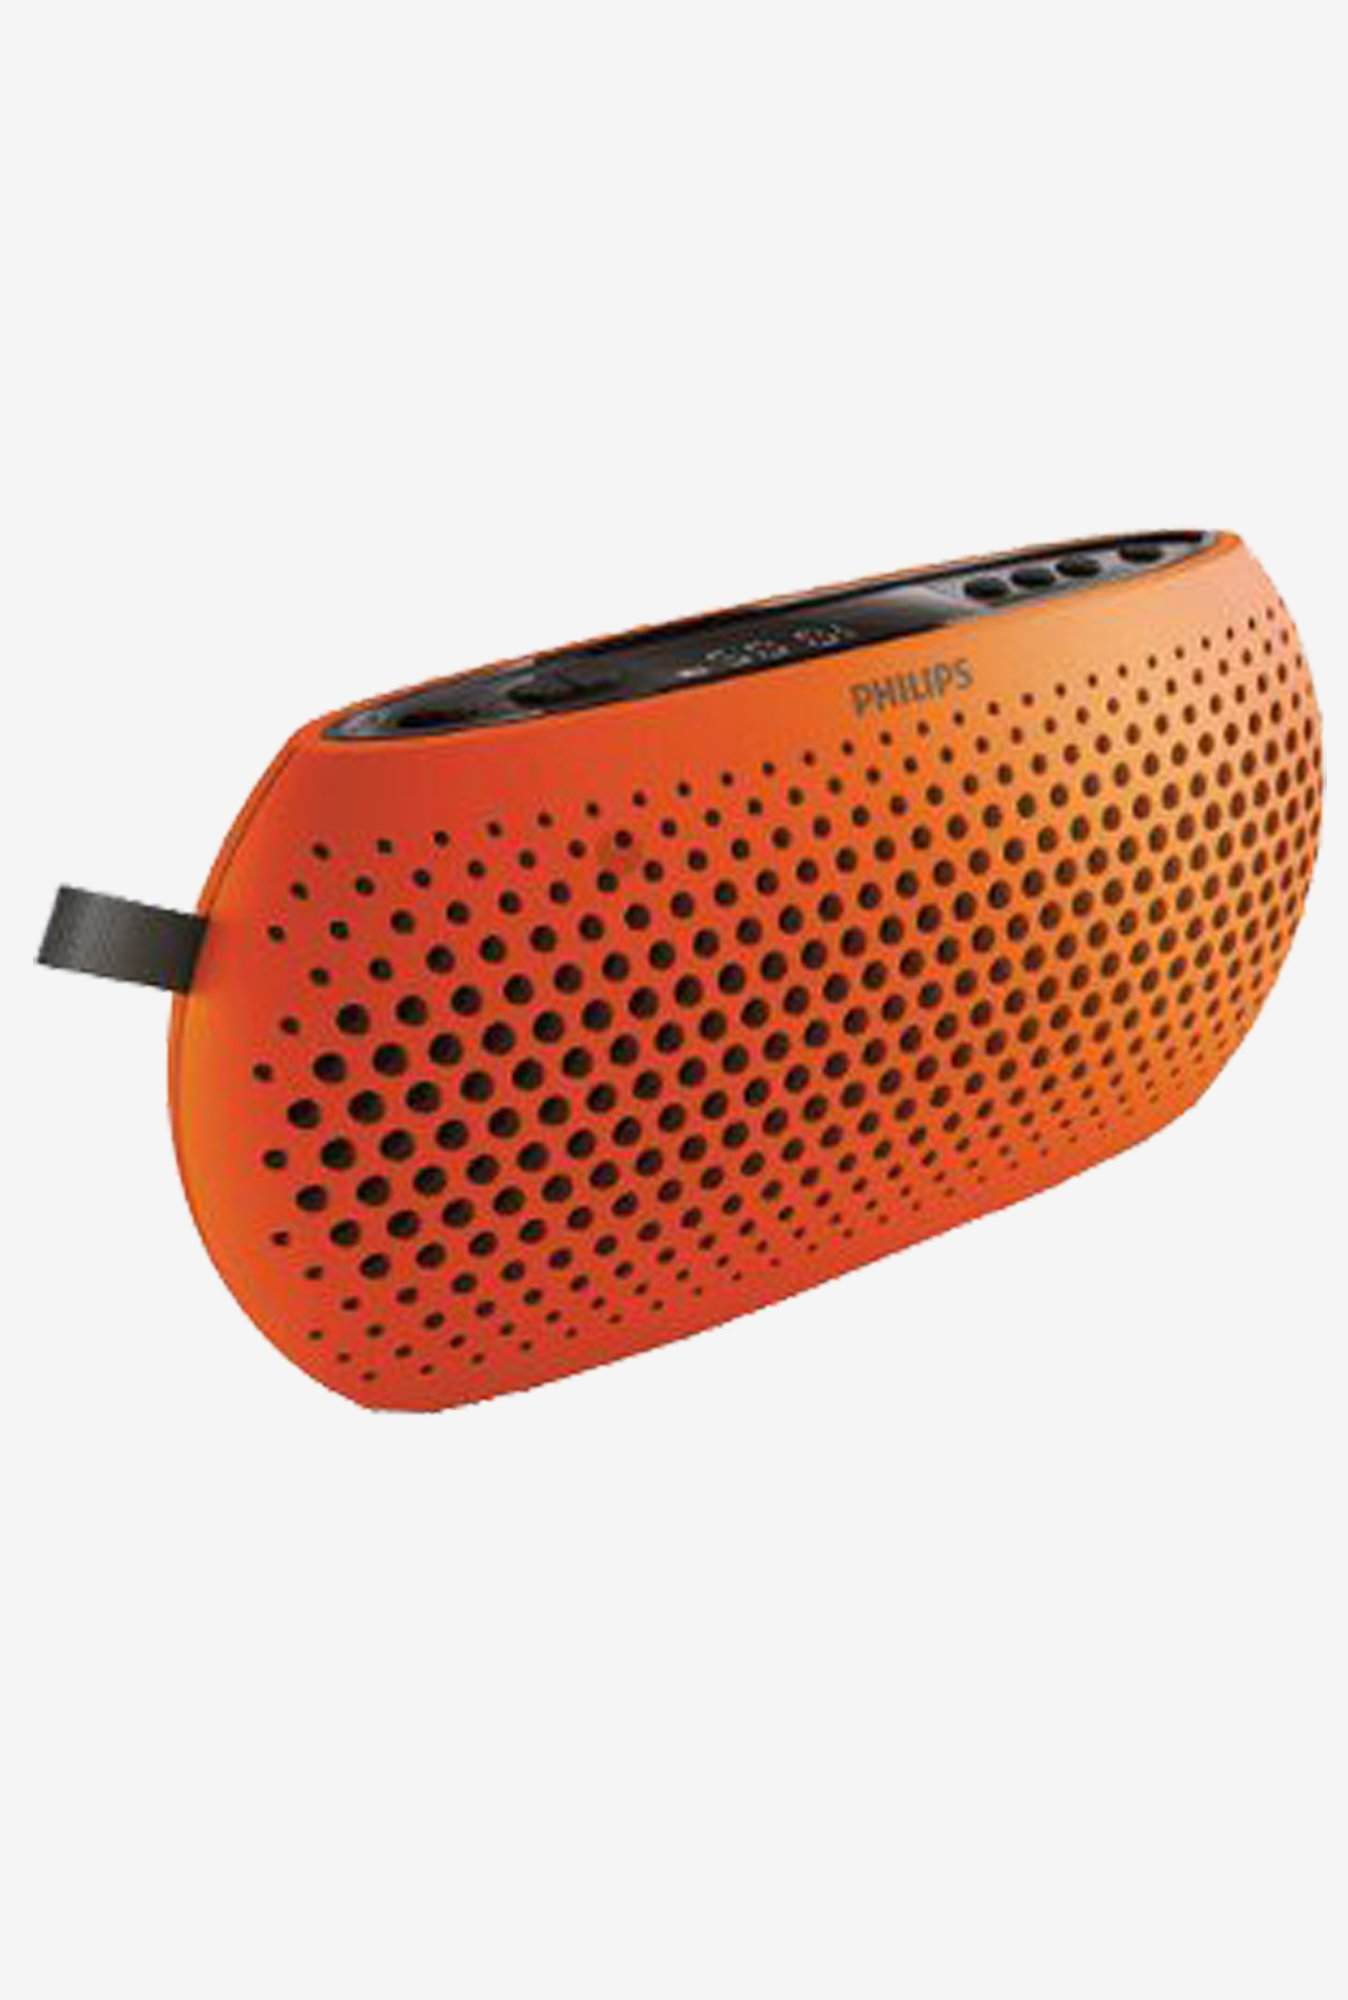 Philips SBM130 Portable Speaker (Orange)